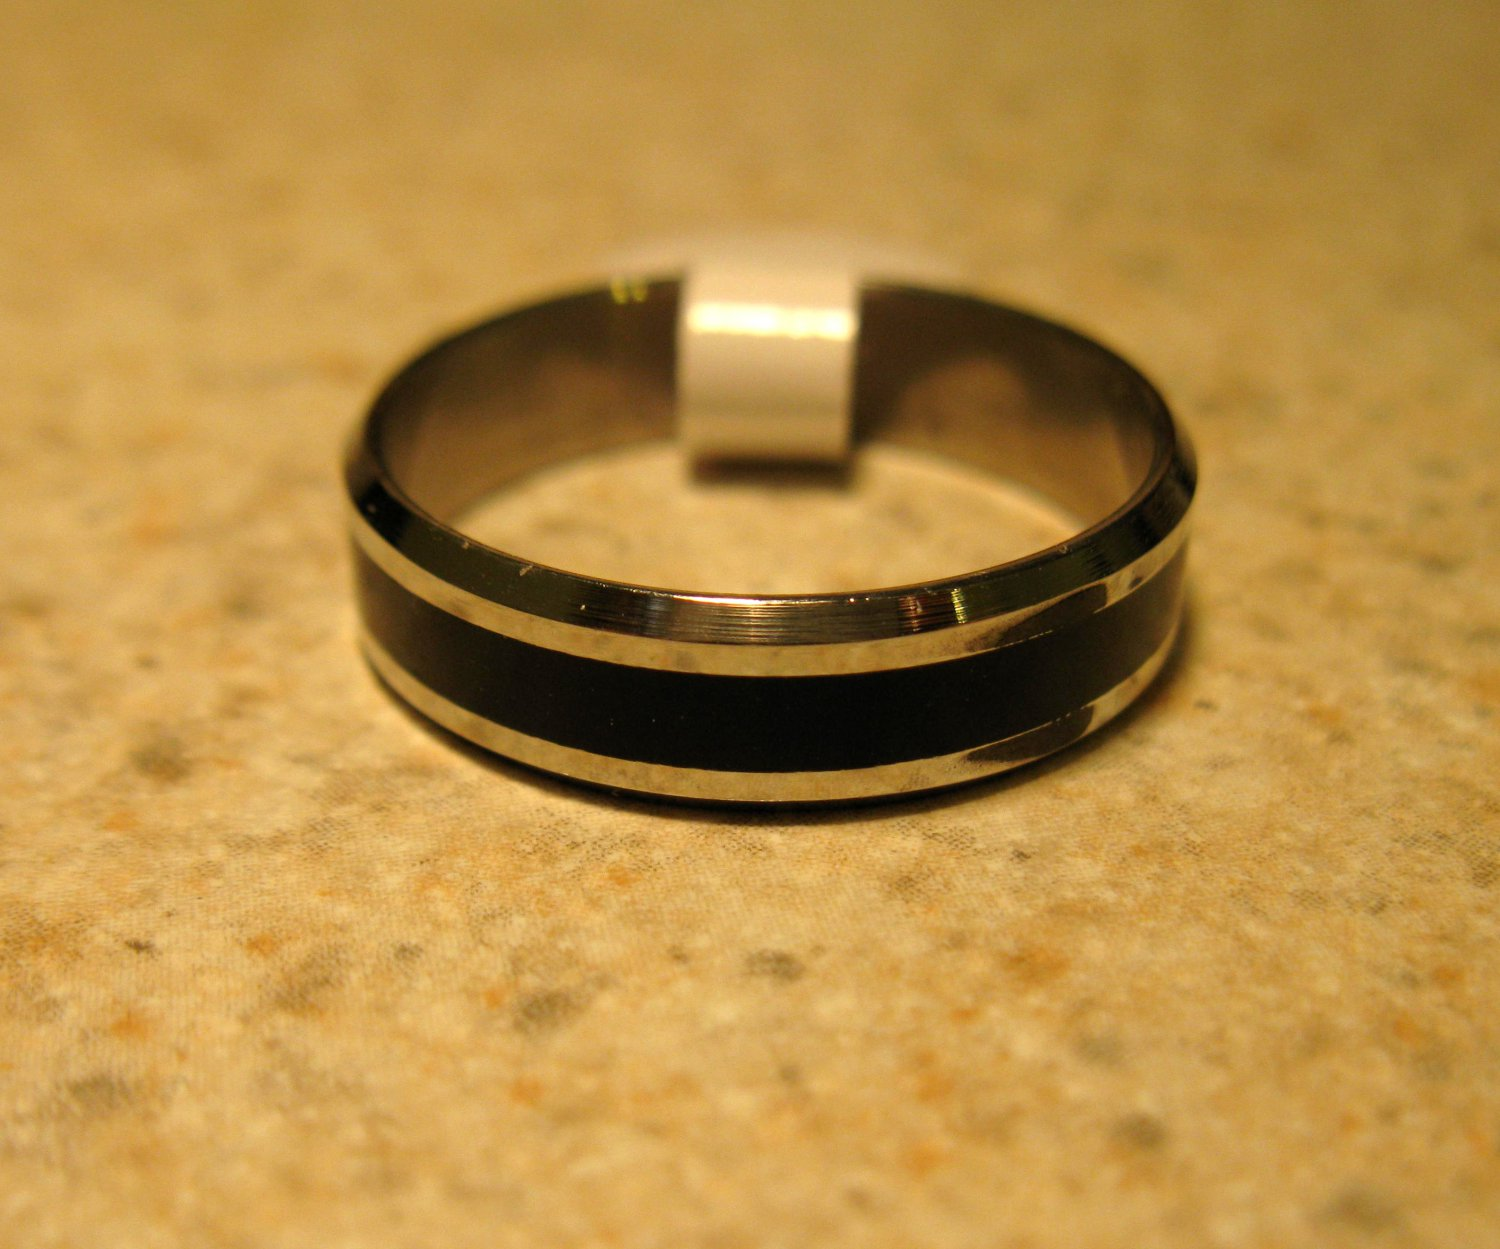 Silver with Black Wedding Band Rings Unisex Sizes 8 New #805